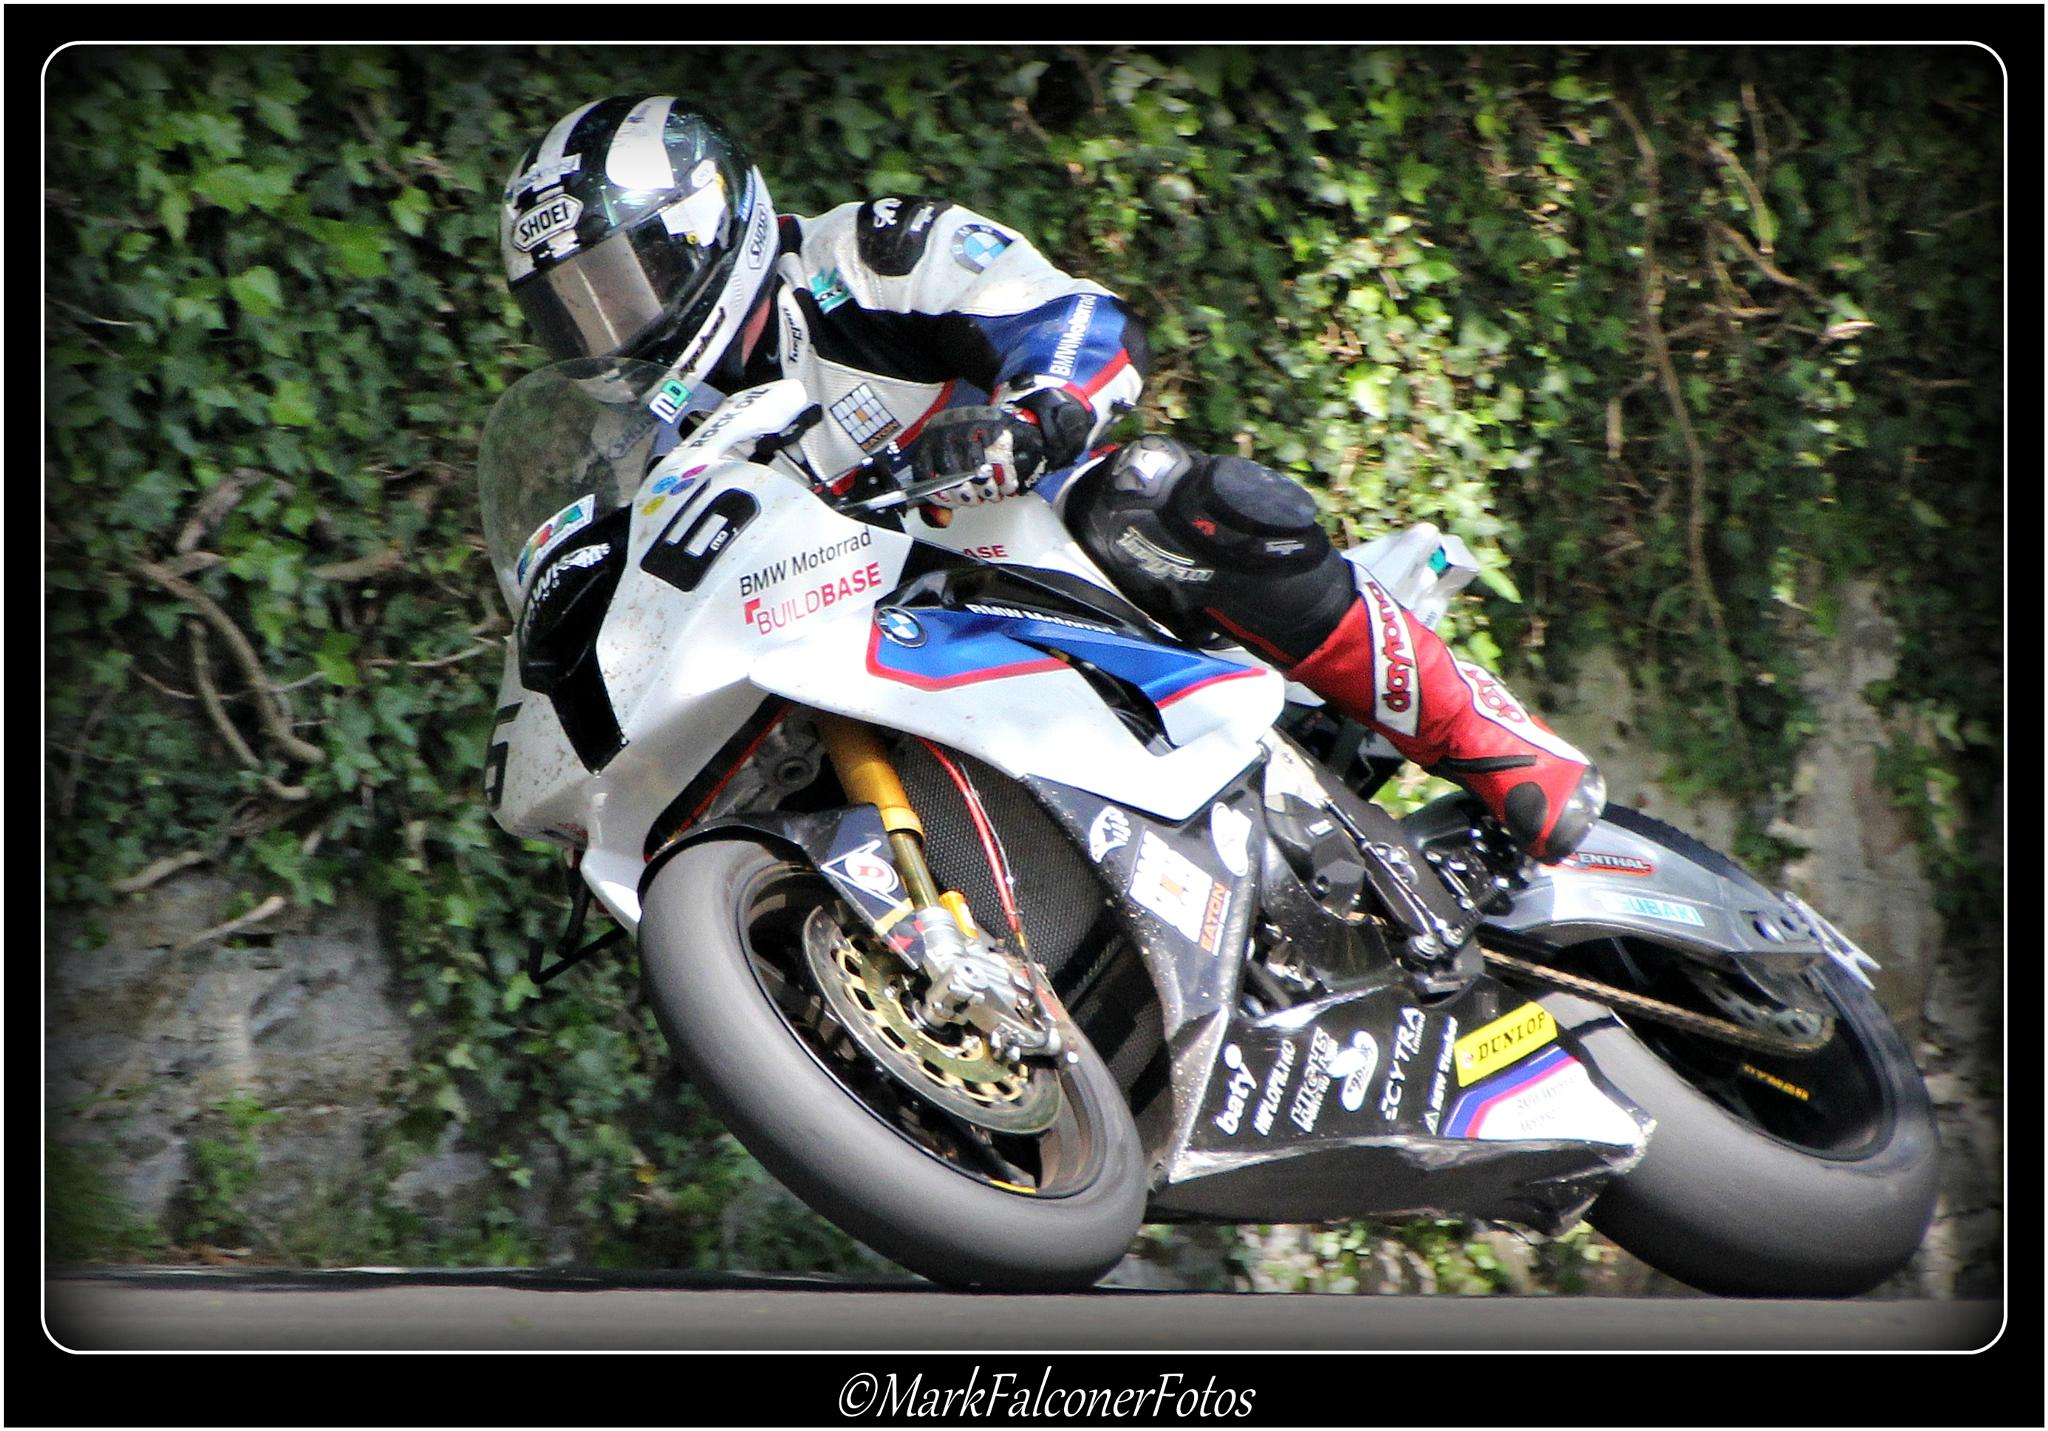 Michael Dunlop @ Isle of Man TT 2014 by Mark Falconer Fotos